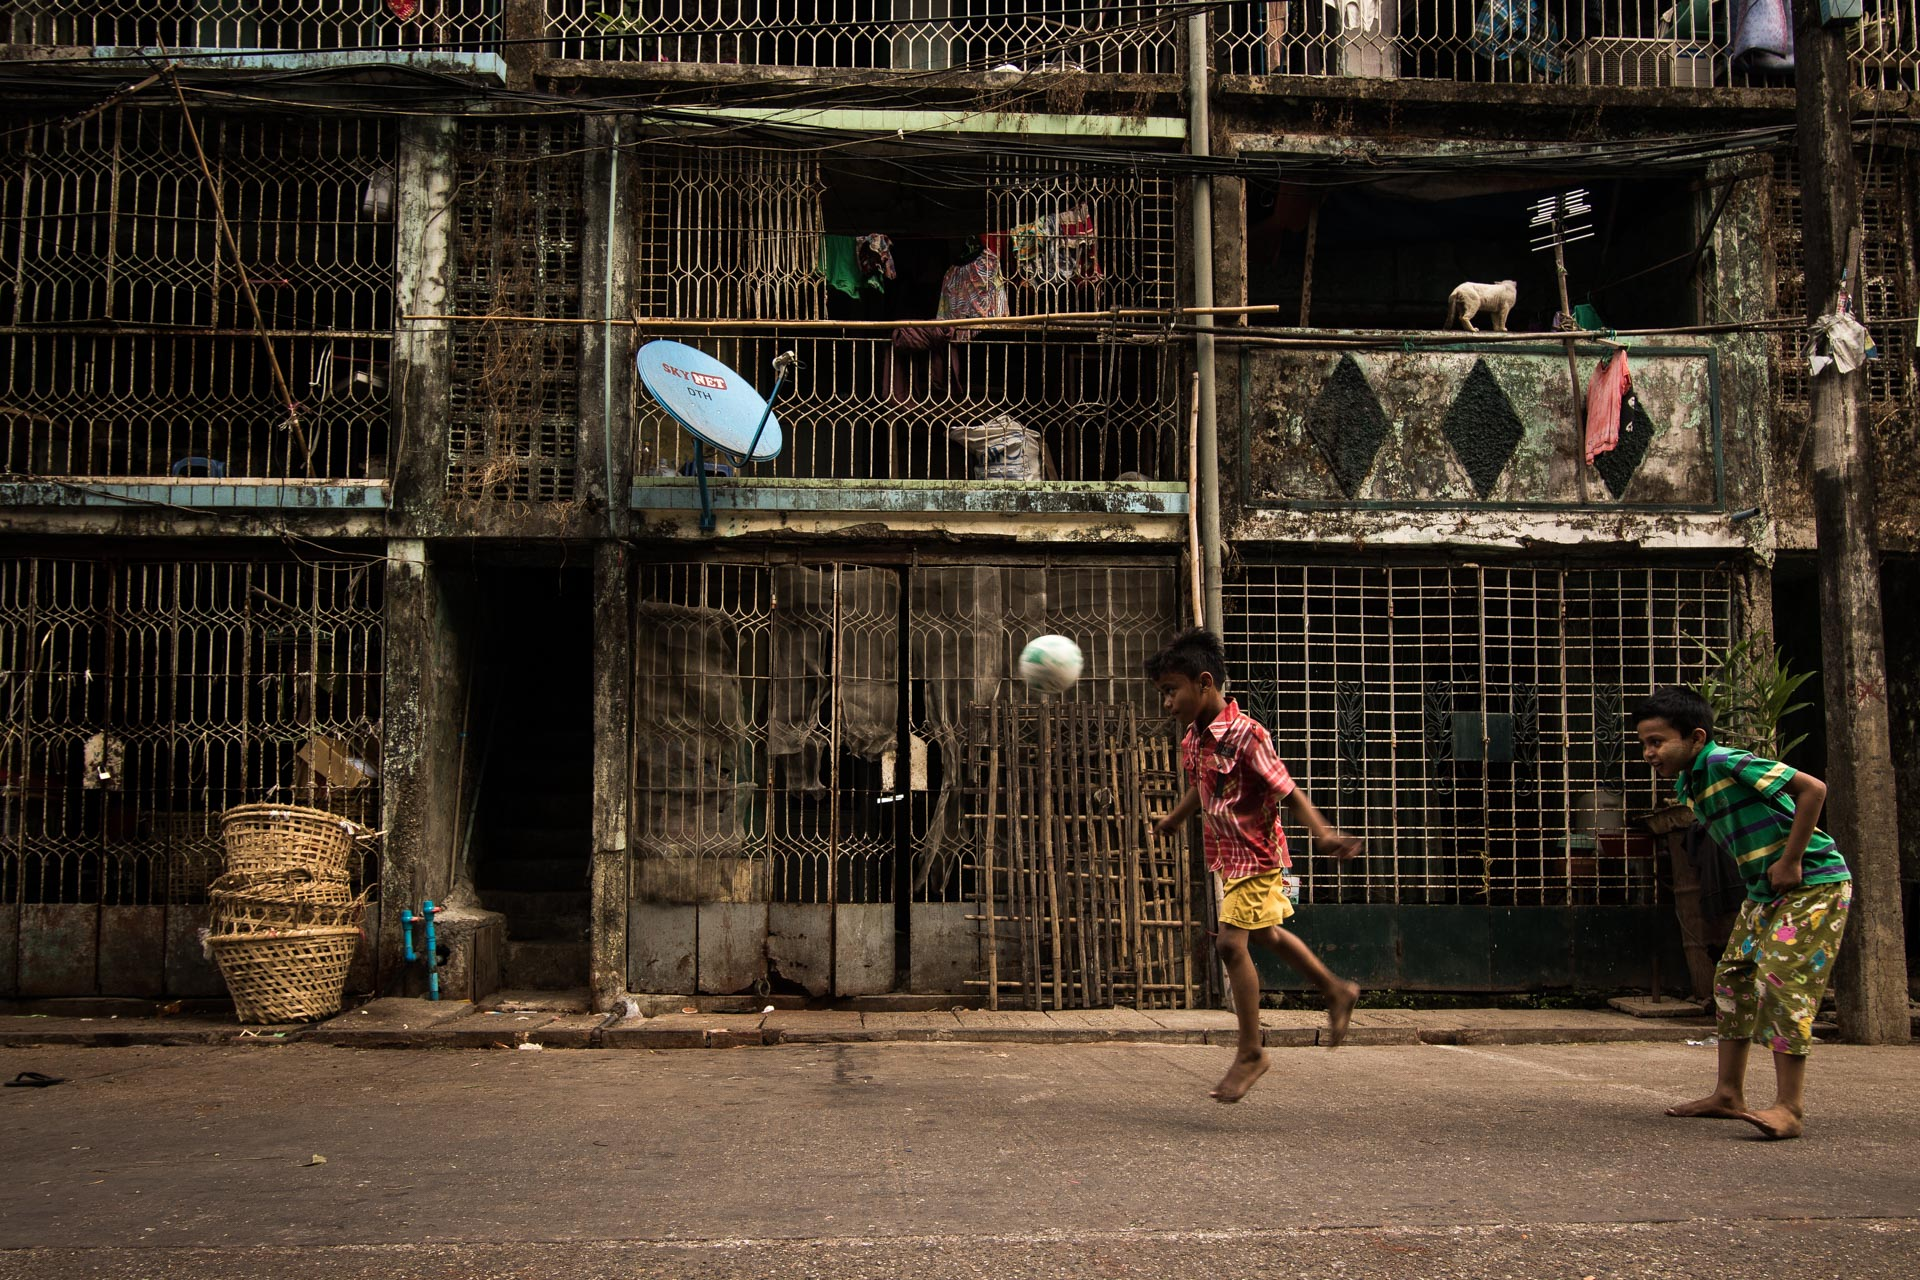 Children playing ball in the streets of downtown Yangon. Myanmar